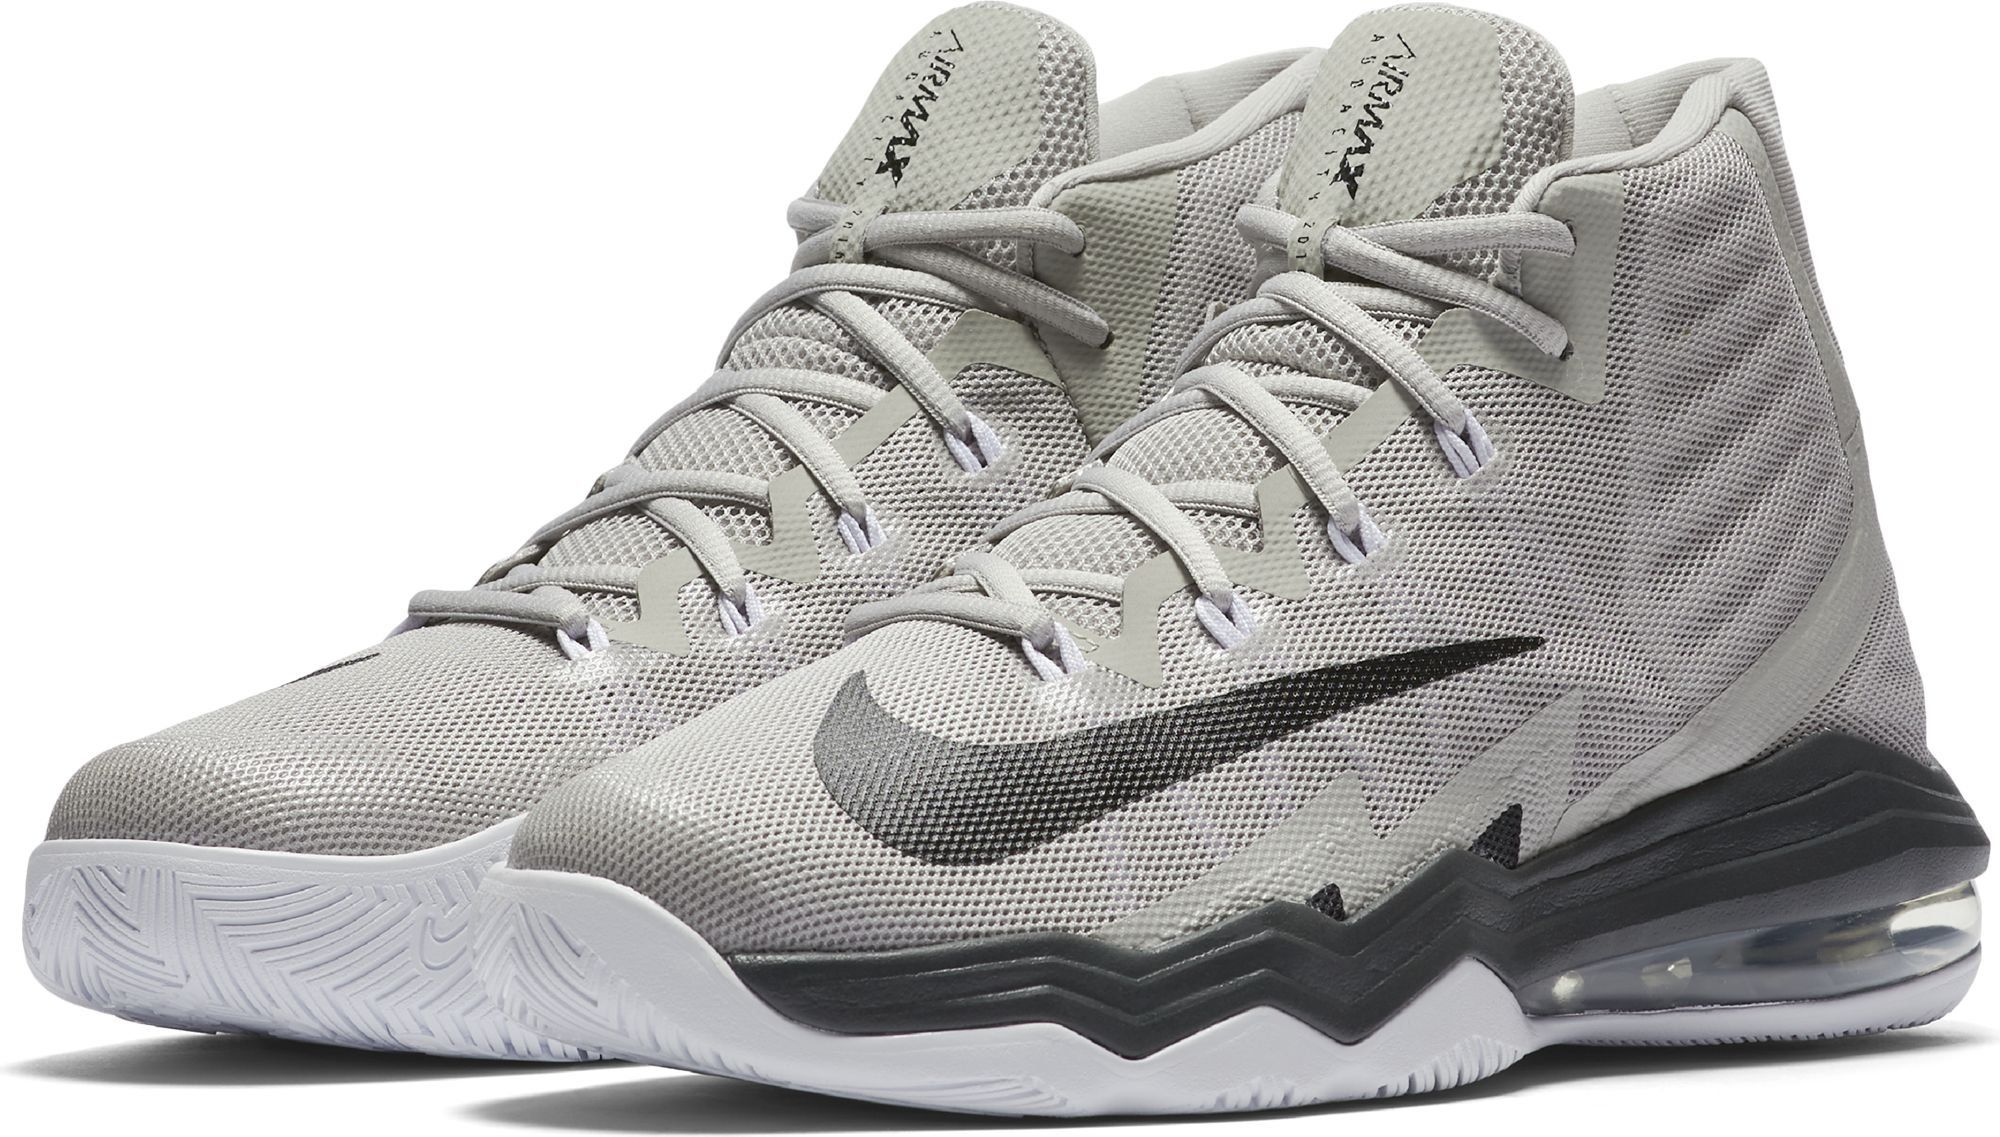 Nike Air Max Audacity 2016 Mens Basketball Shoe | Modell's